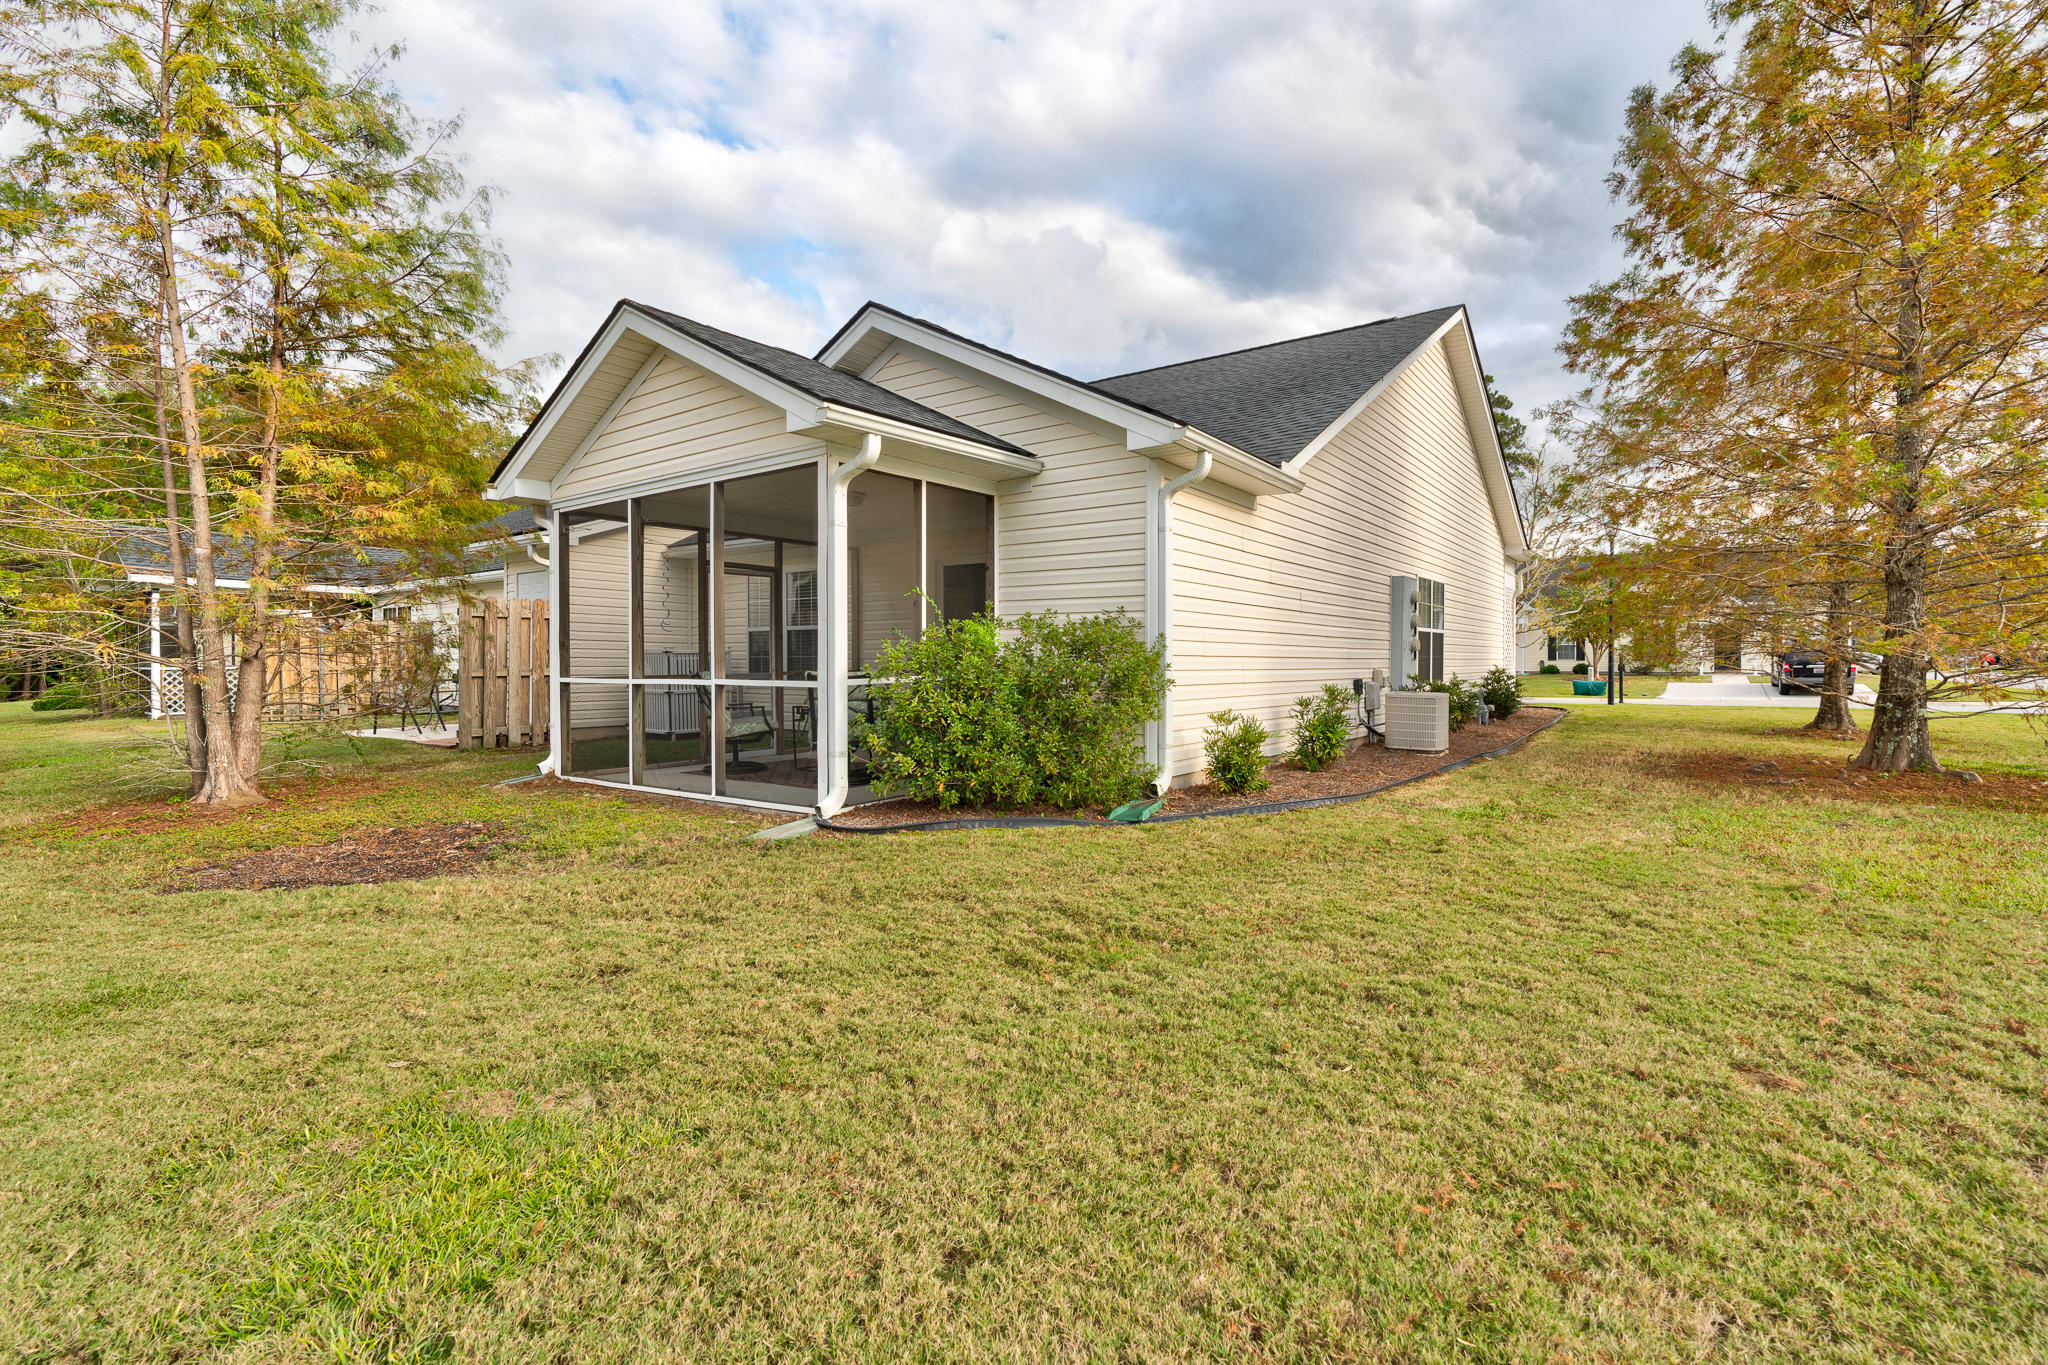 Oakbrook Commons Homes For Sale - 228 Hardee, Summerville, SC - 0